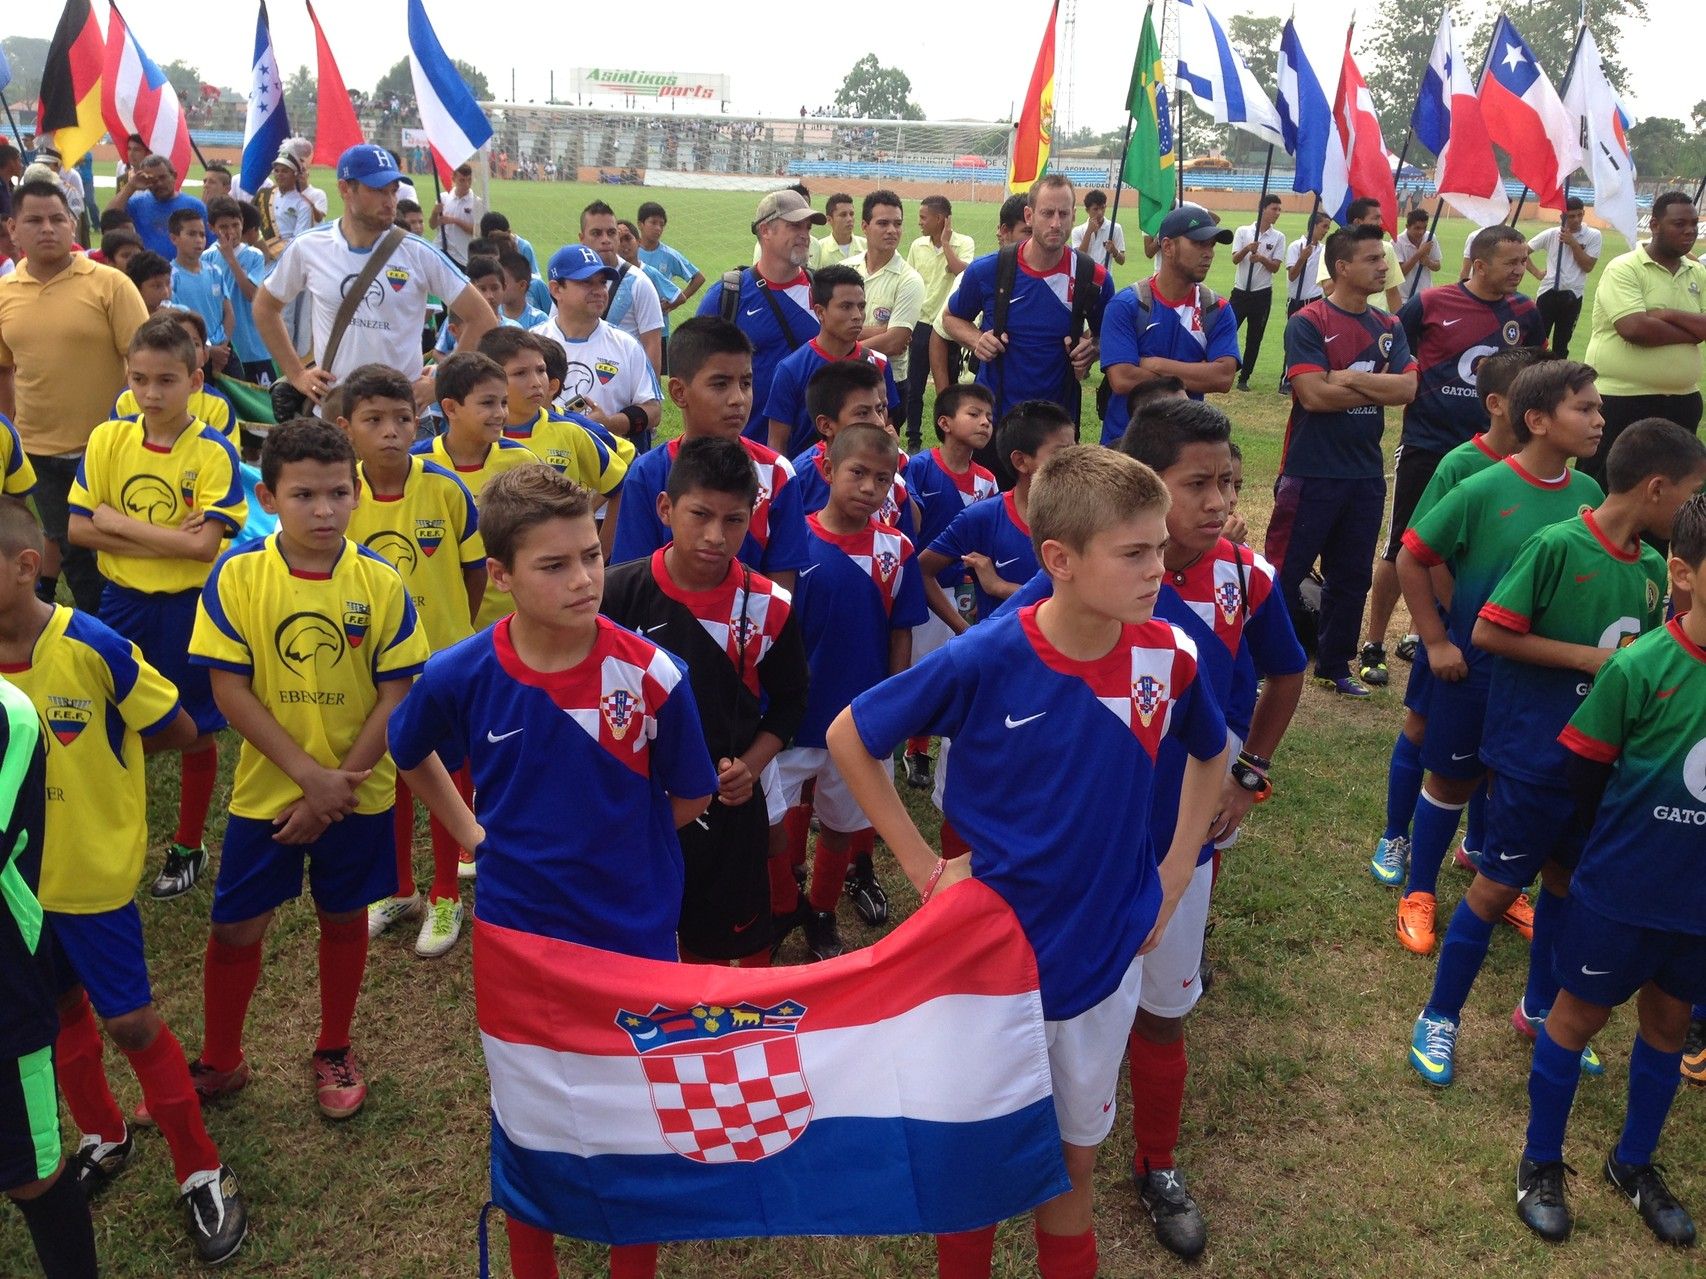 opening ceremonies at the mundialito